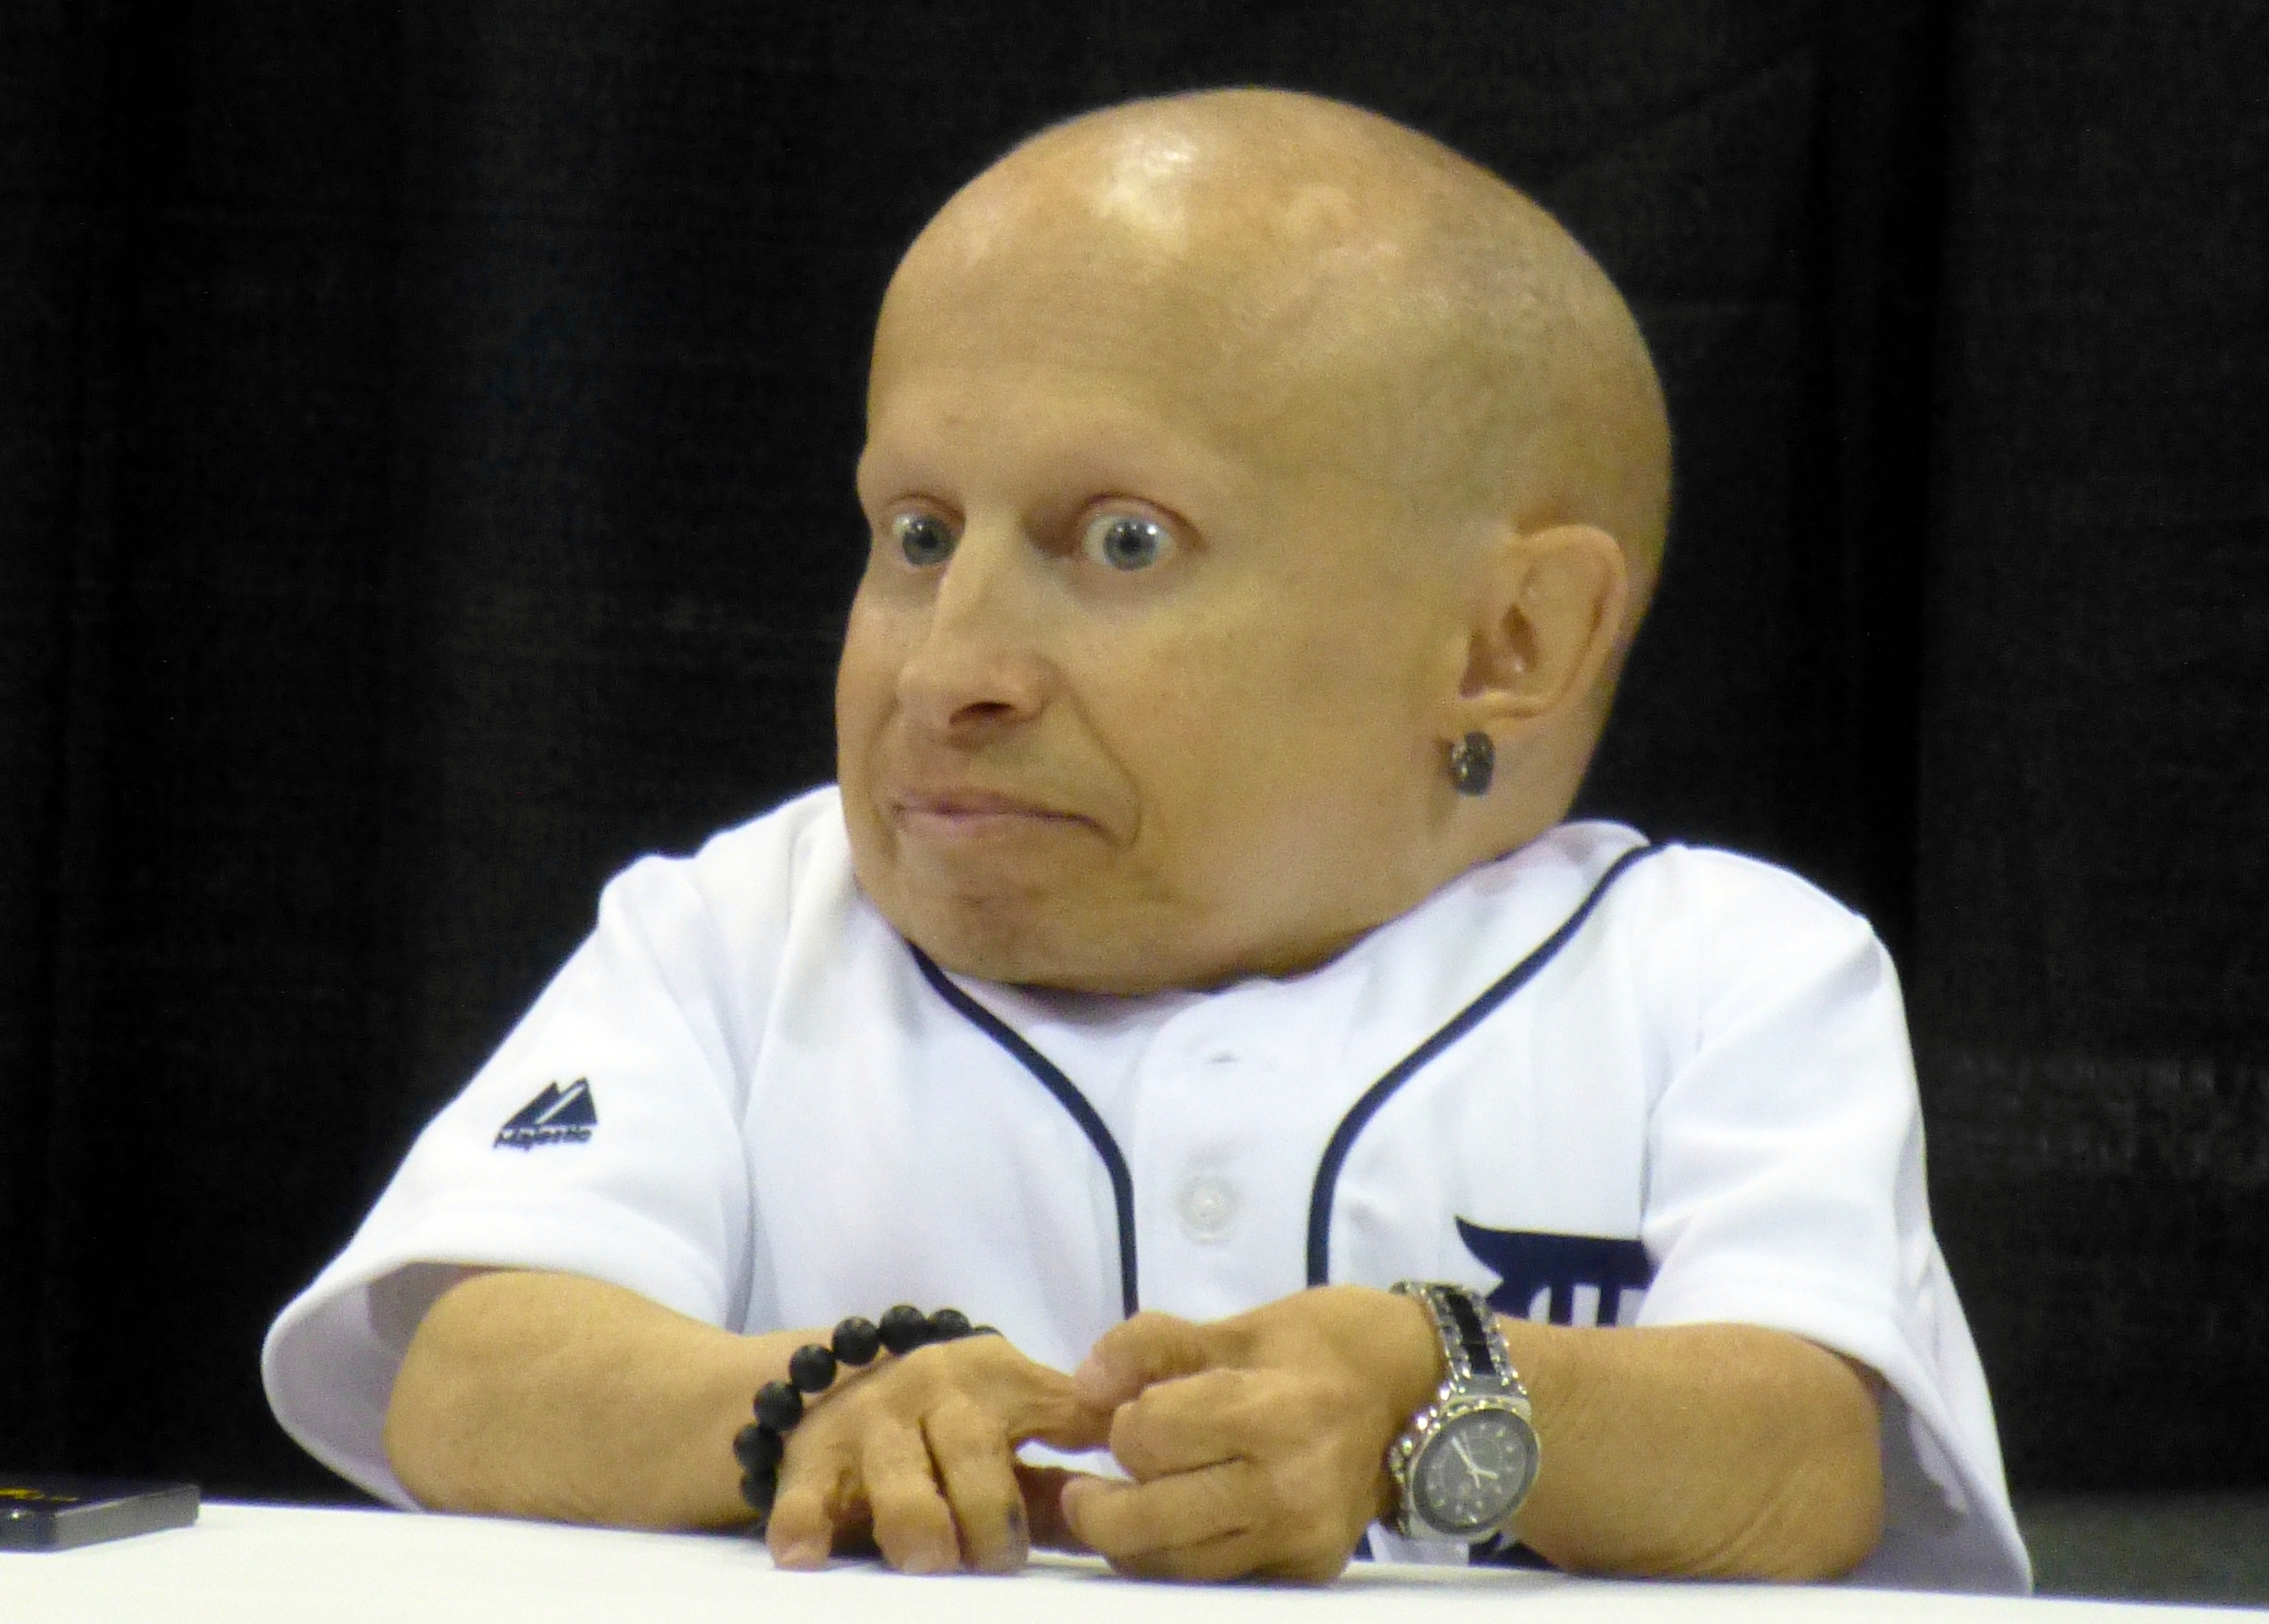 verne troyerverne troyer height, verne troyer football, verne troyer youtube, verne troyer party, verne troyer genevieve gallen, verne troyer harry potter, verne troyer 2016, verne troyer, verne troyer net worth, verne troyer dead, verne troyer turkey, verne troyer wiki, verne troyer twitter, verne troyer and ranae shrider tape, verne troyer wife swap, verne troyer hotline bling, verne troyer death, verne troyer net worth 2015